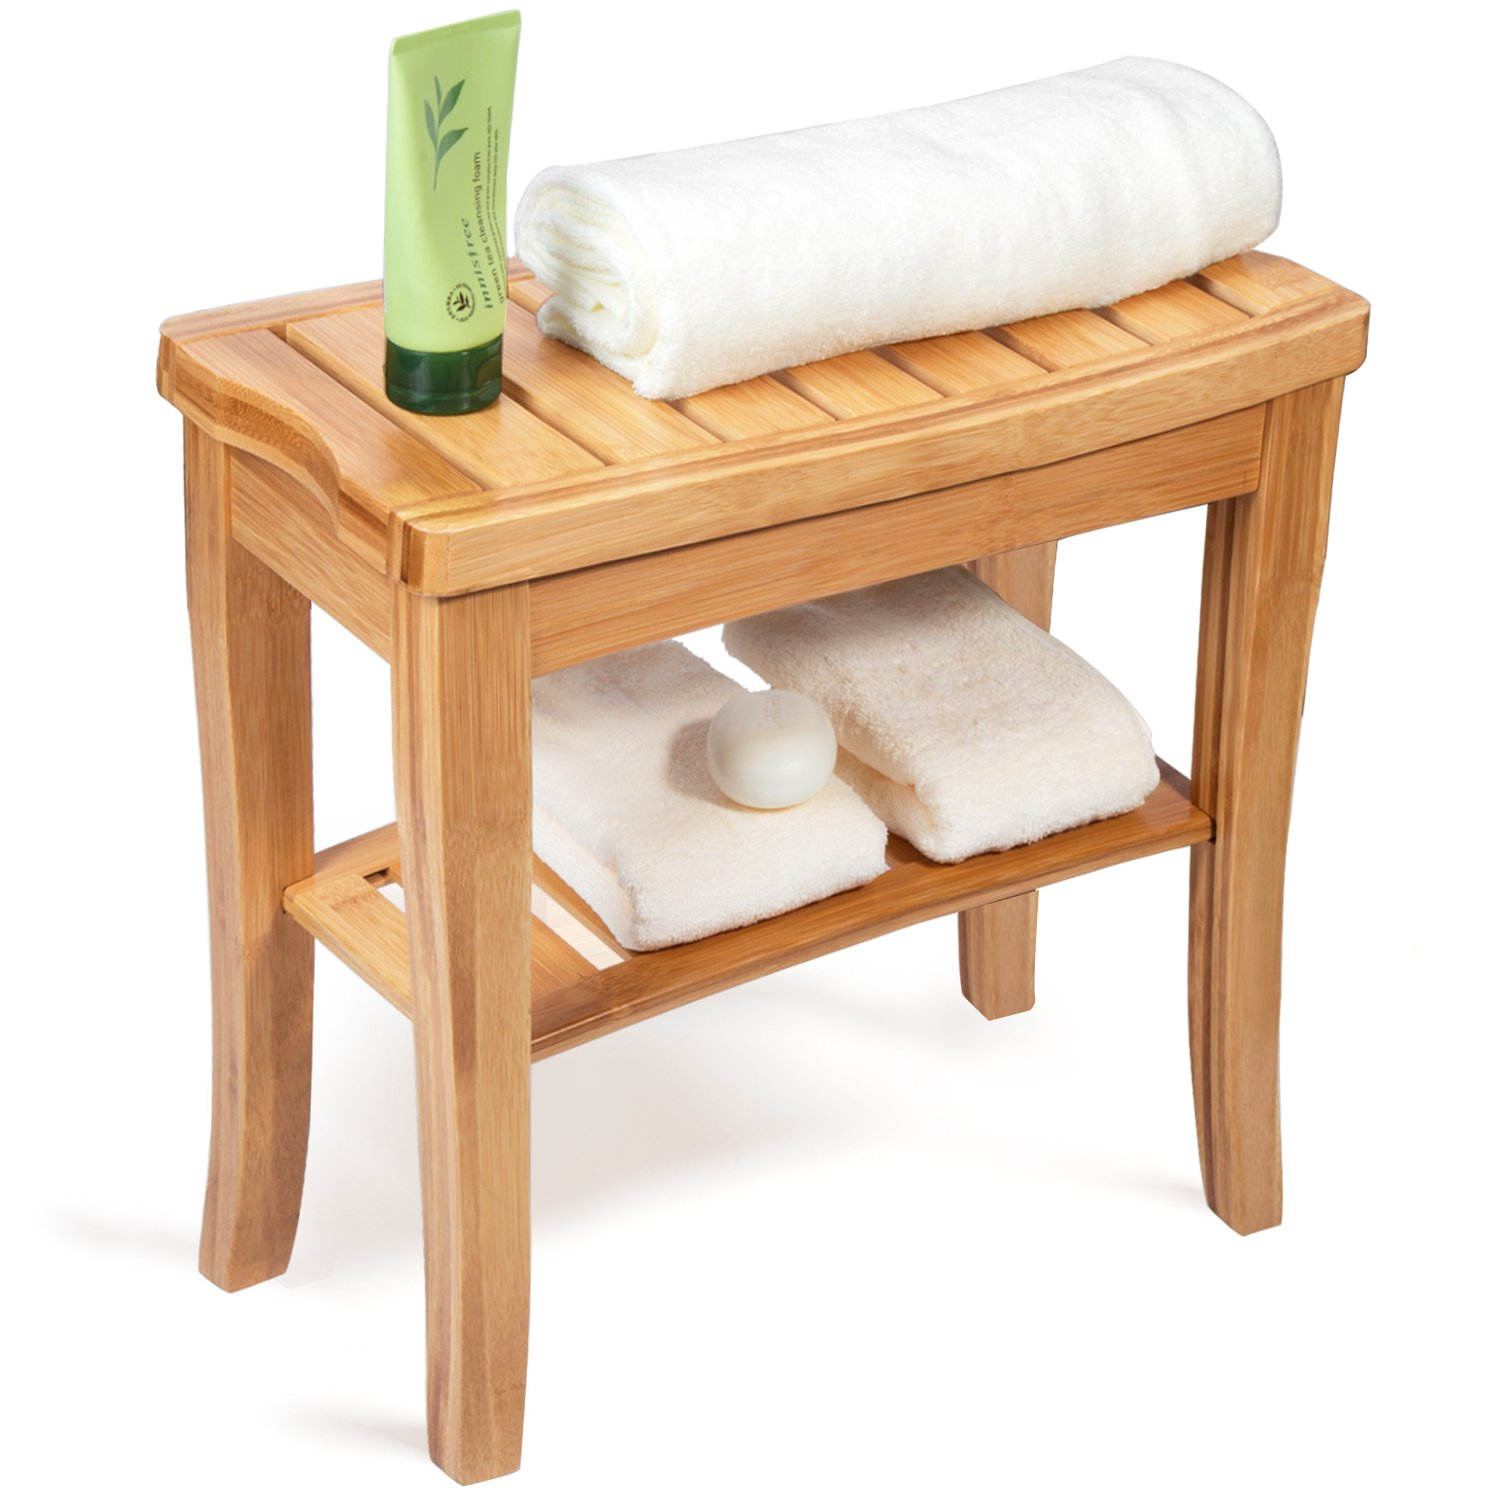 Shower Bench Seat, HBlife 100% Deluxe Bamboo Bench with Storage Shelf Bathtub Shower Chair